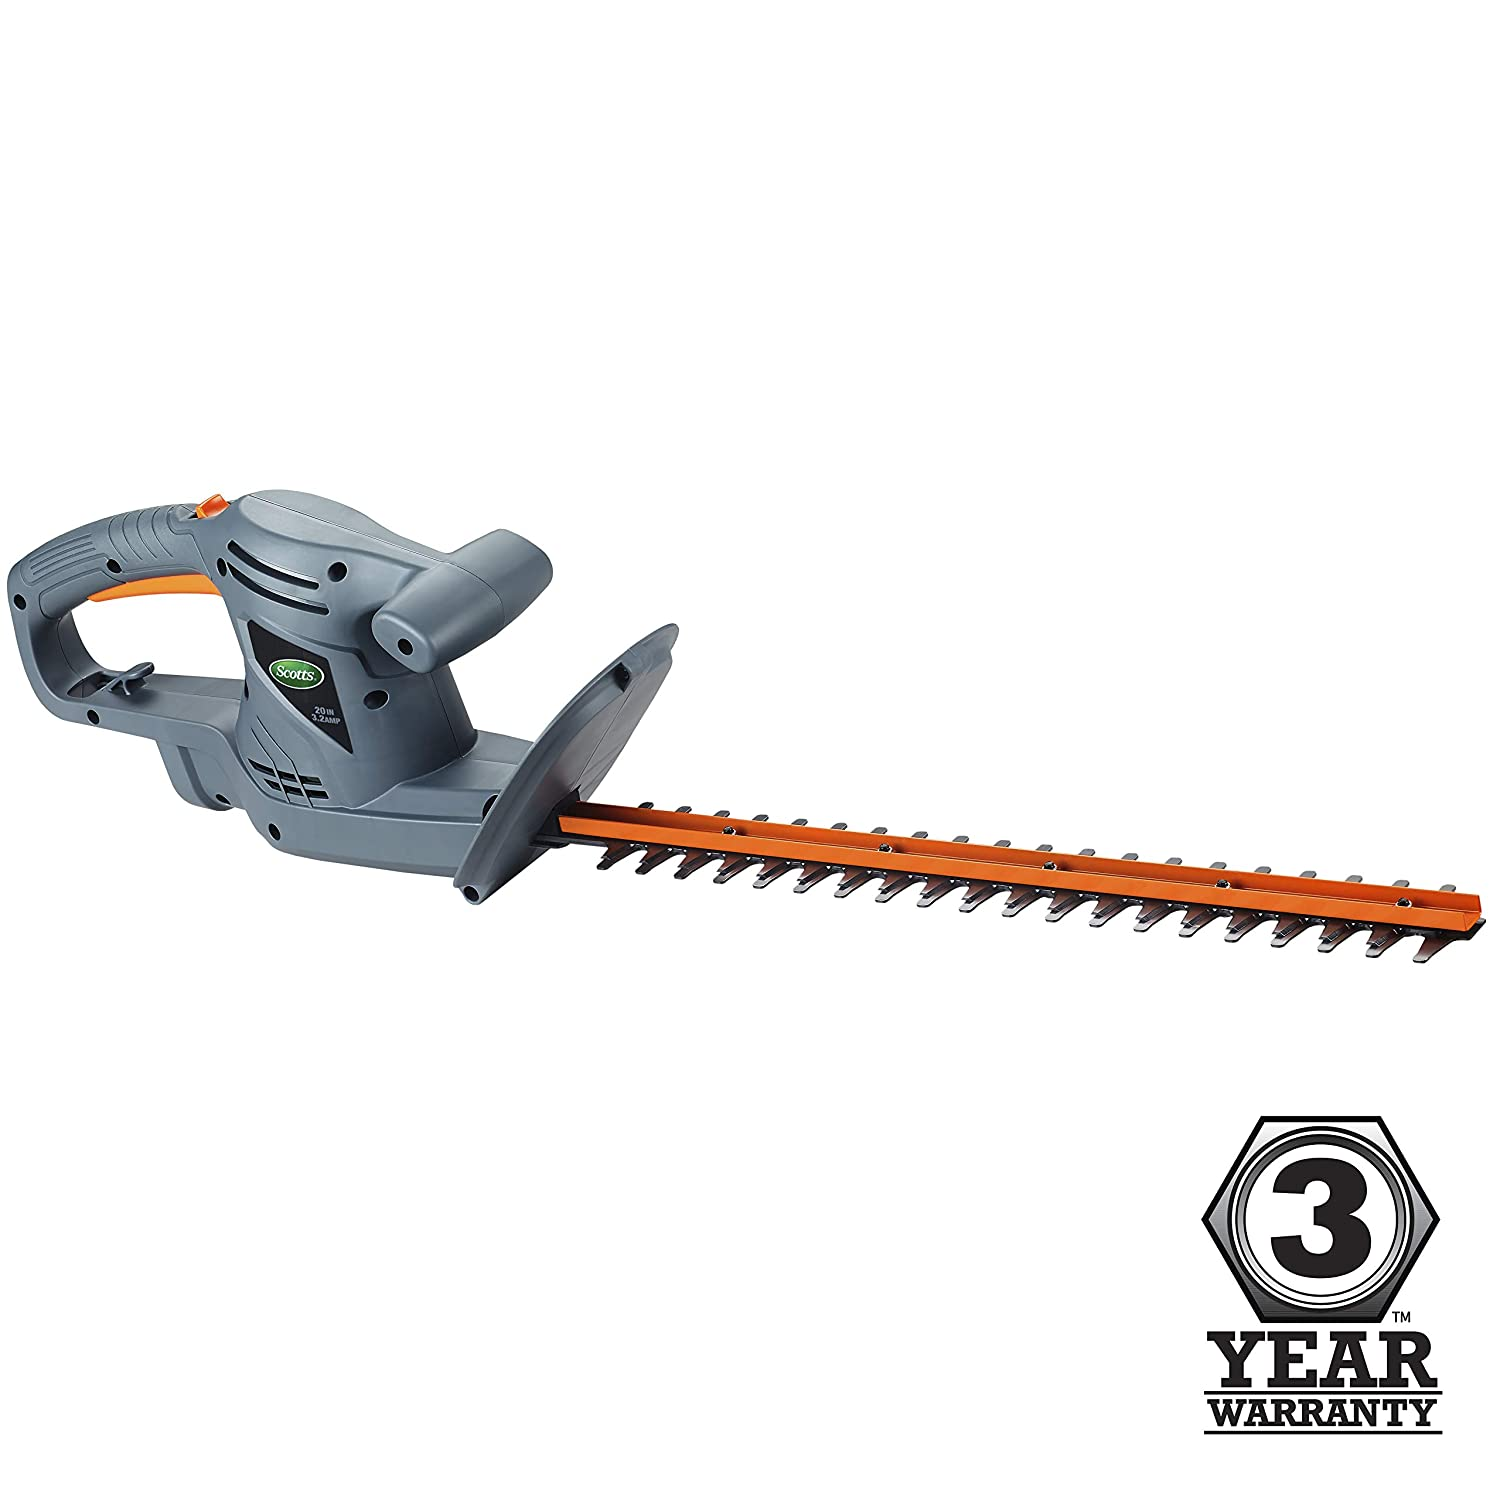 Scotts Outdoor Power Tools HT10020S 20-Inch 3.2-Amp Corded Electric Hedge Trimmer, Grey